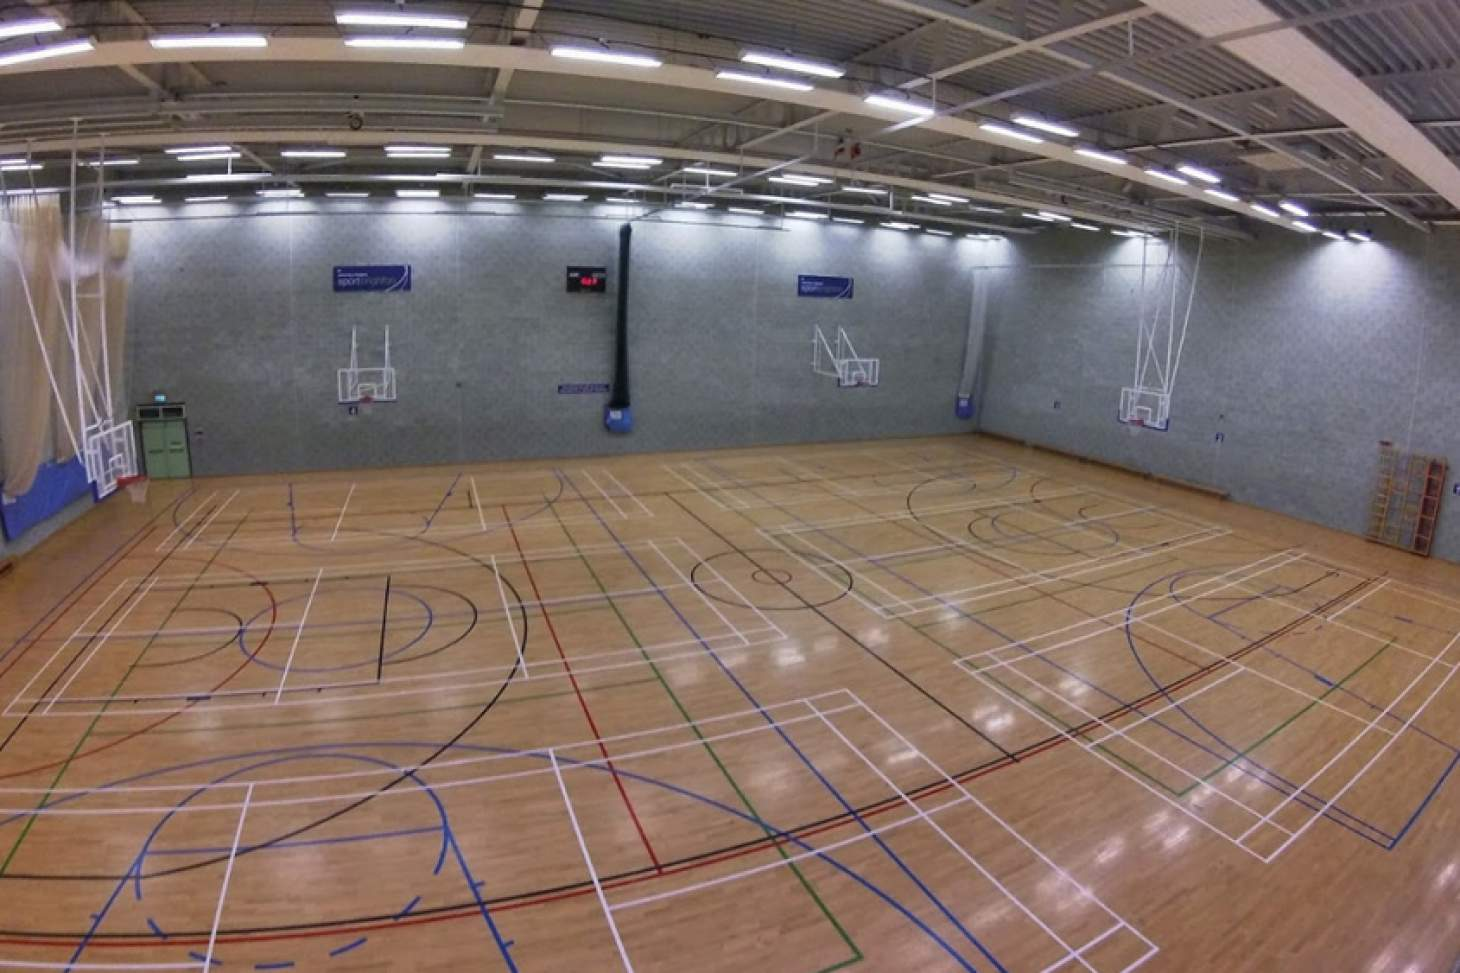 University Of Brighton (Falmer Campus) Indoor | Hard badminton court